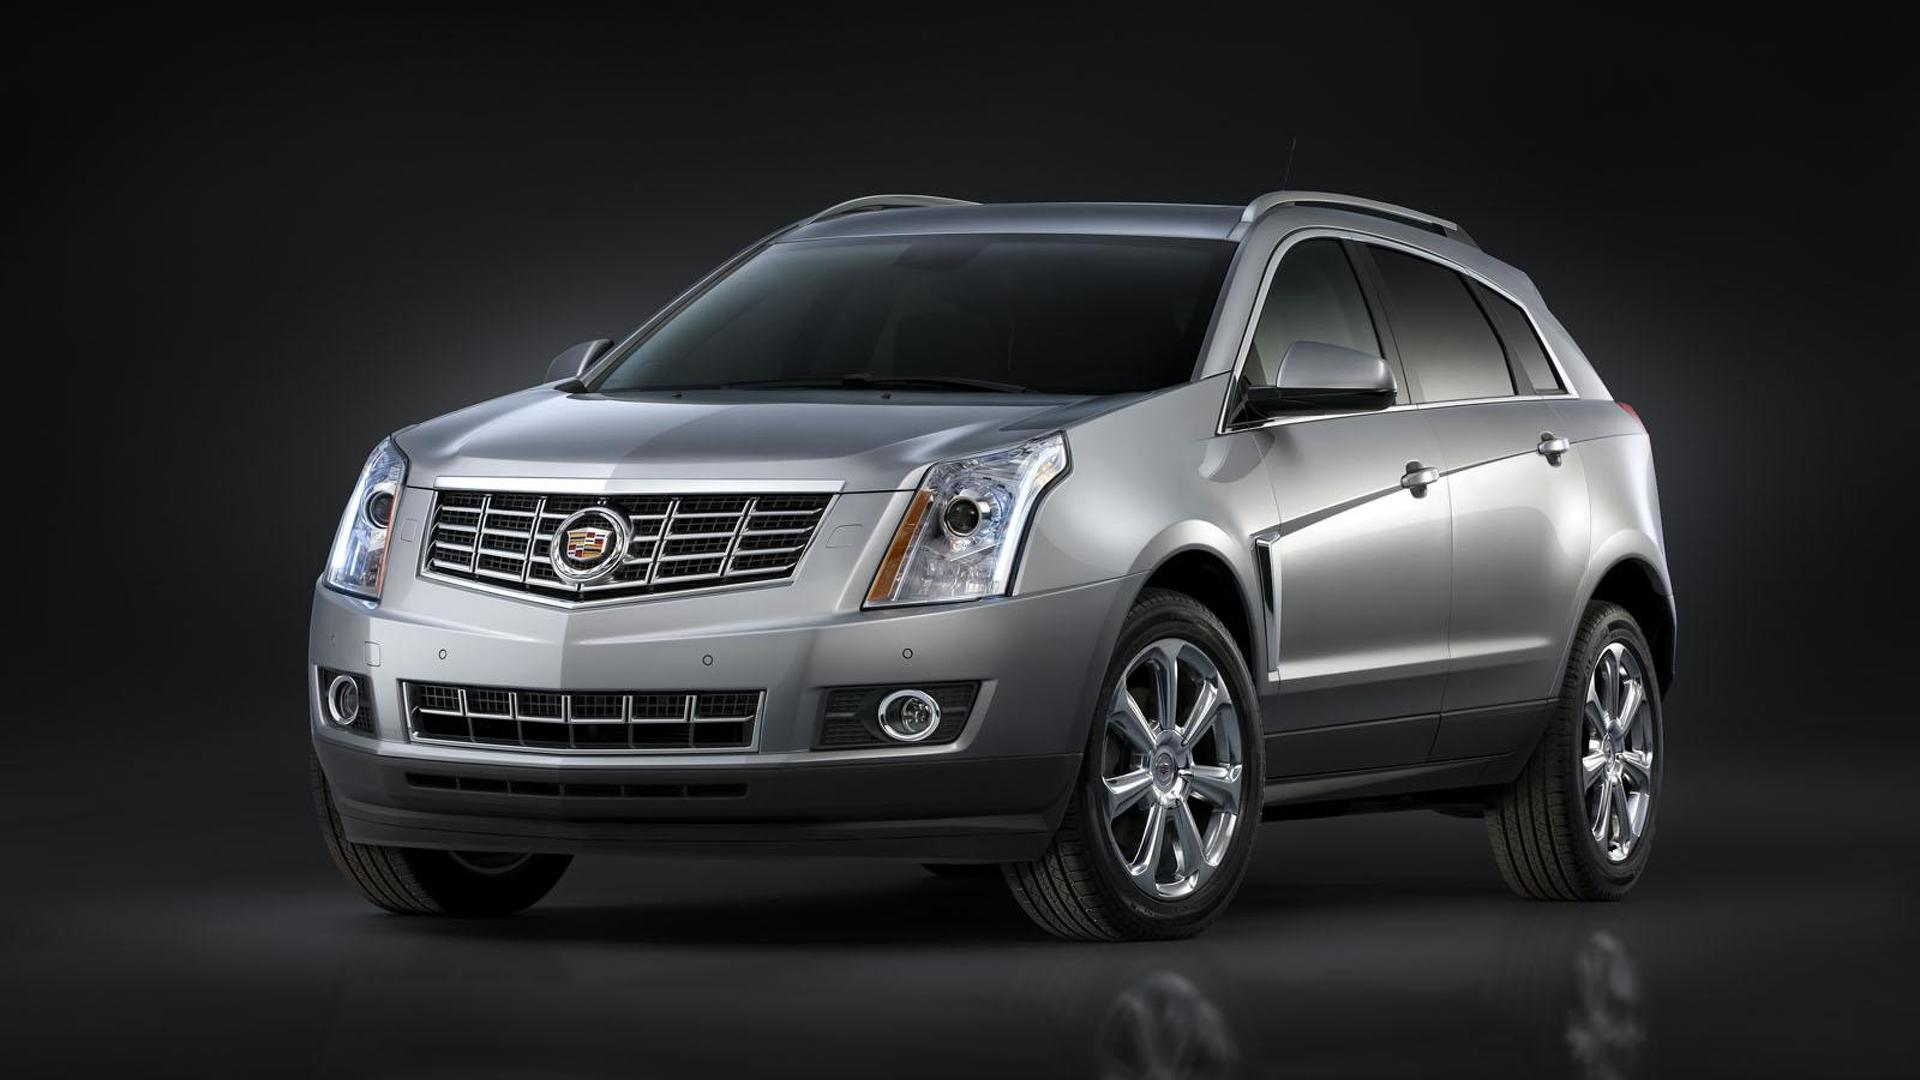 Cadillac still considering a large crossover - report